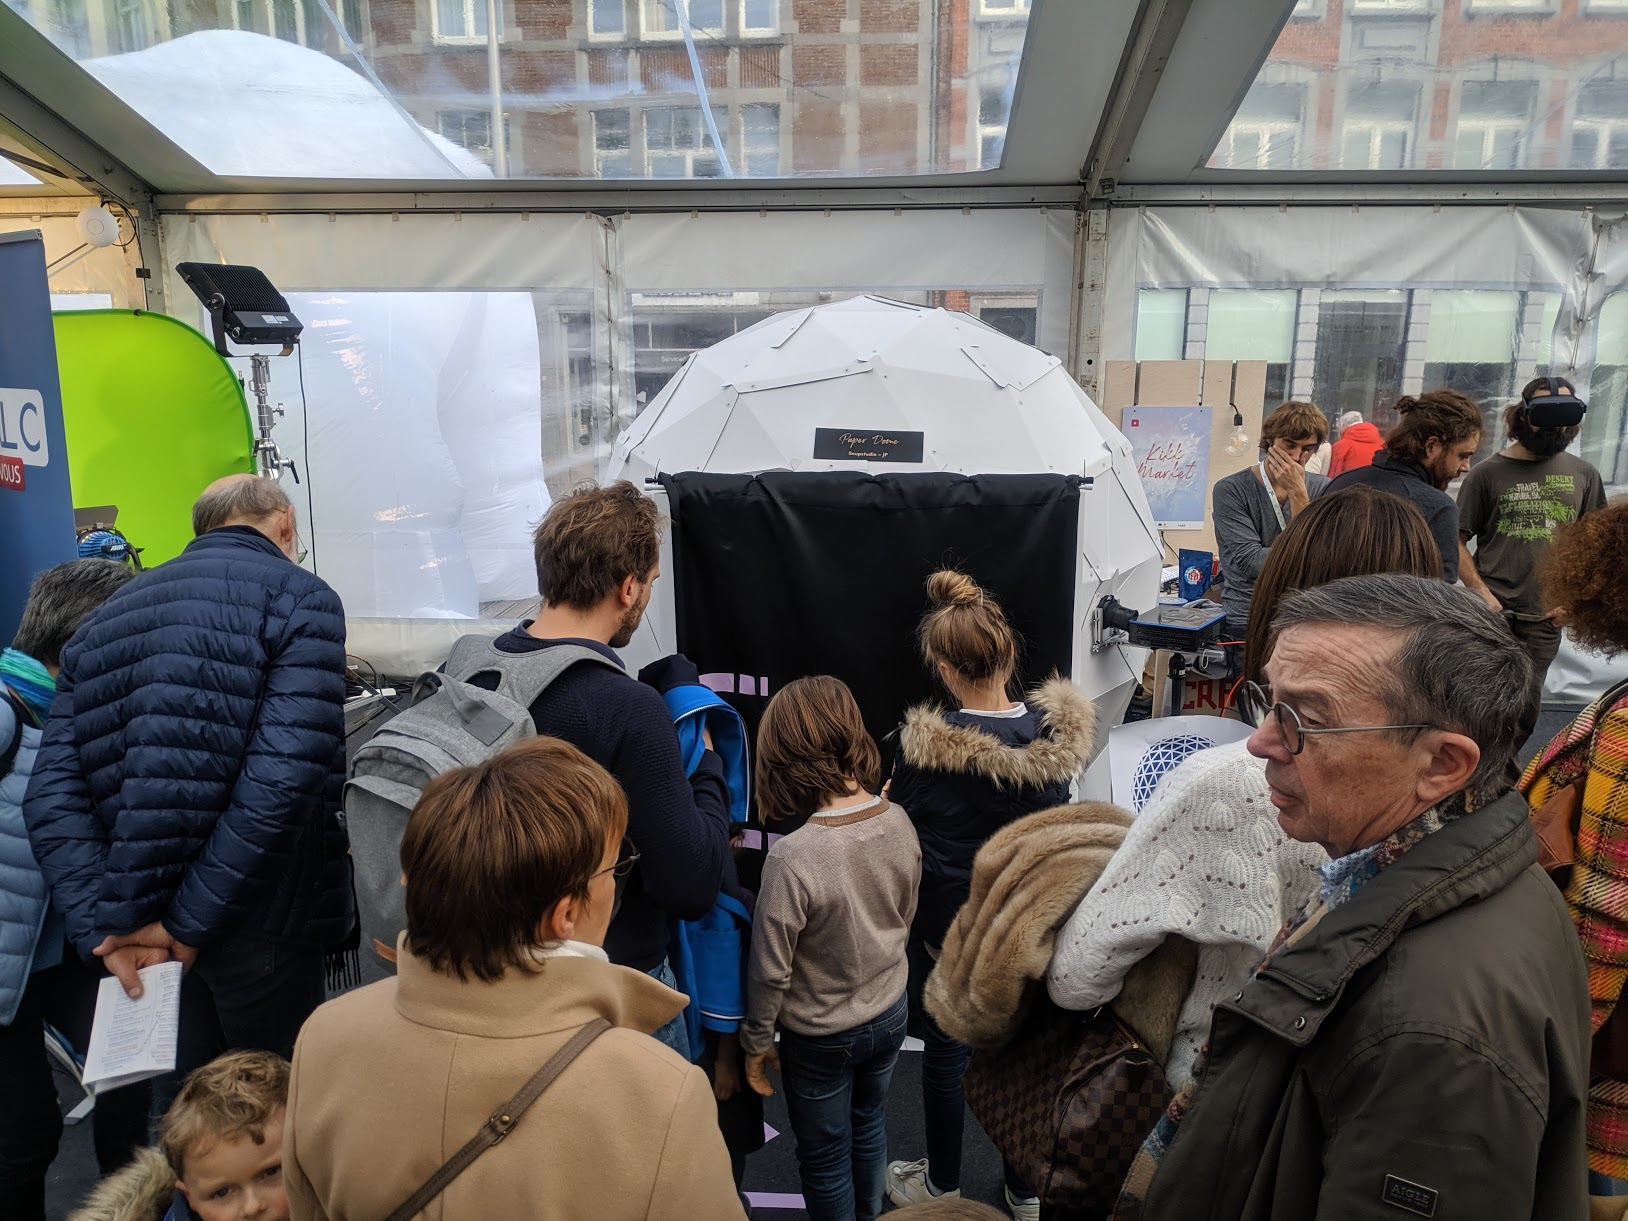 Personal Cardboard Dome Screen